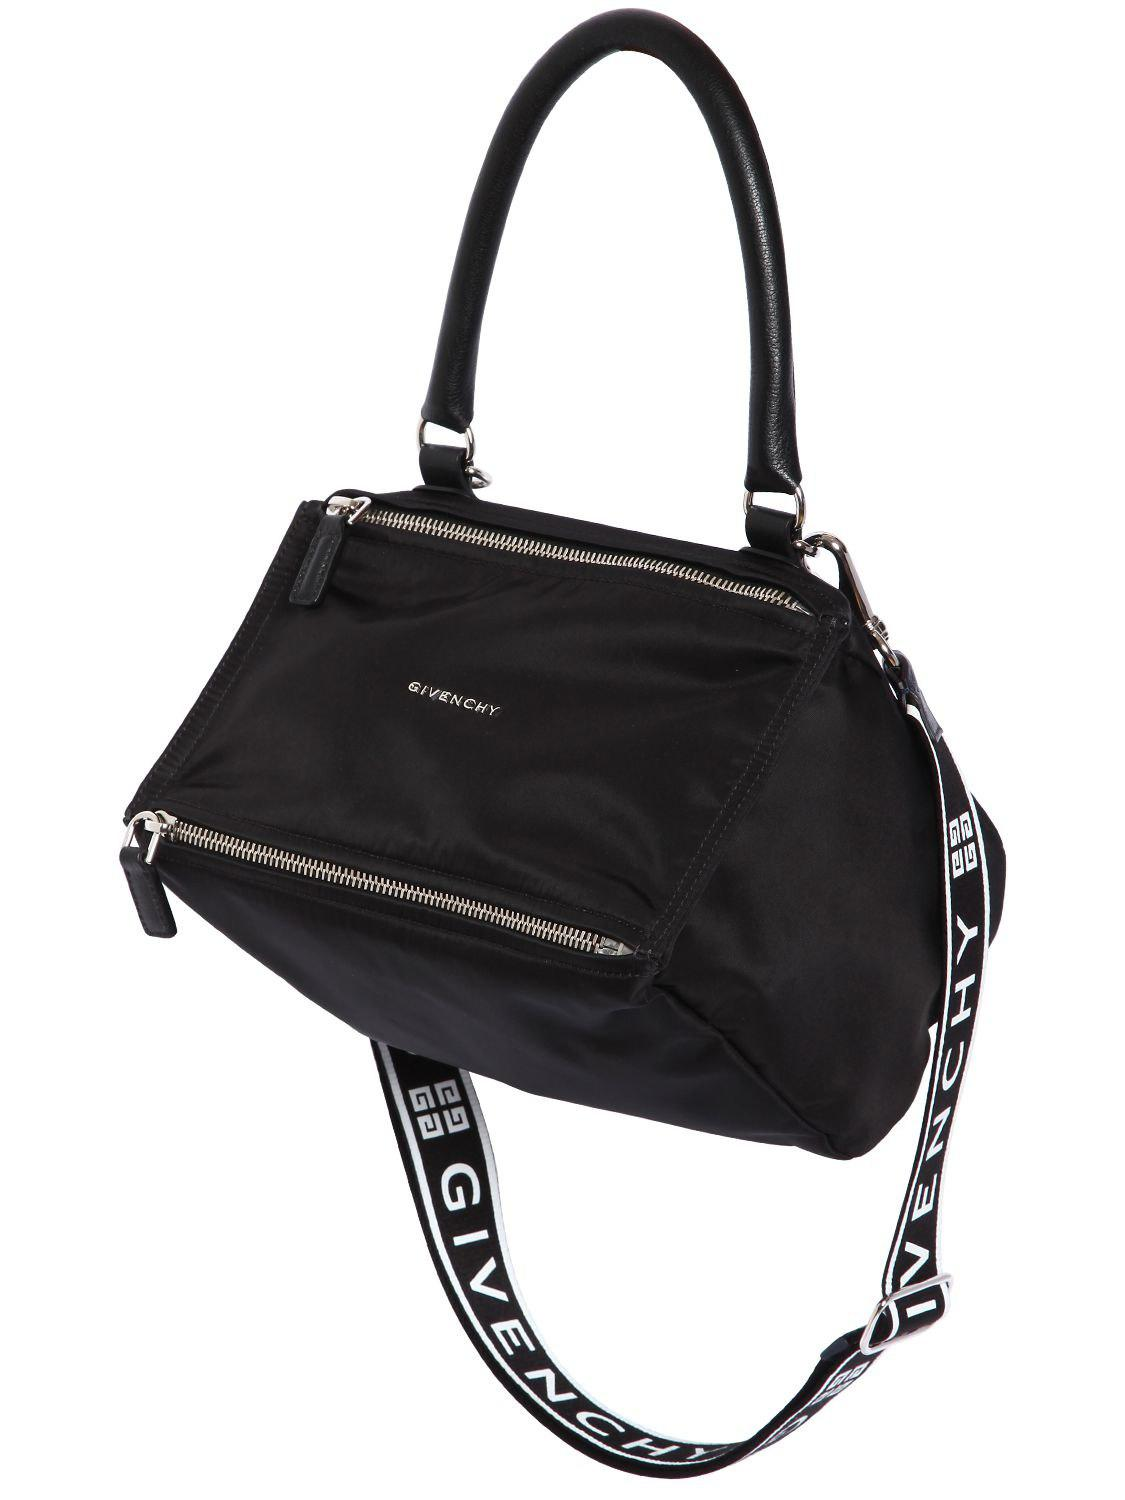 dbd16586f2d Givenchy - Black Small Pandora Nylon Bag W  Logo Strap - Lyst. View  fullscreen